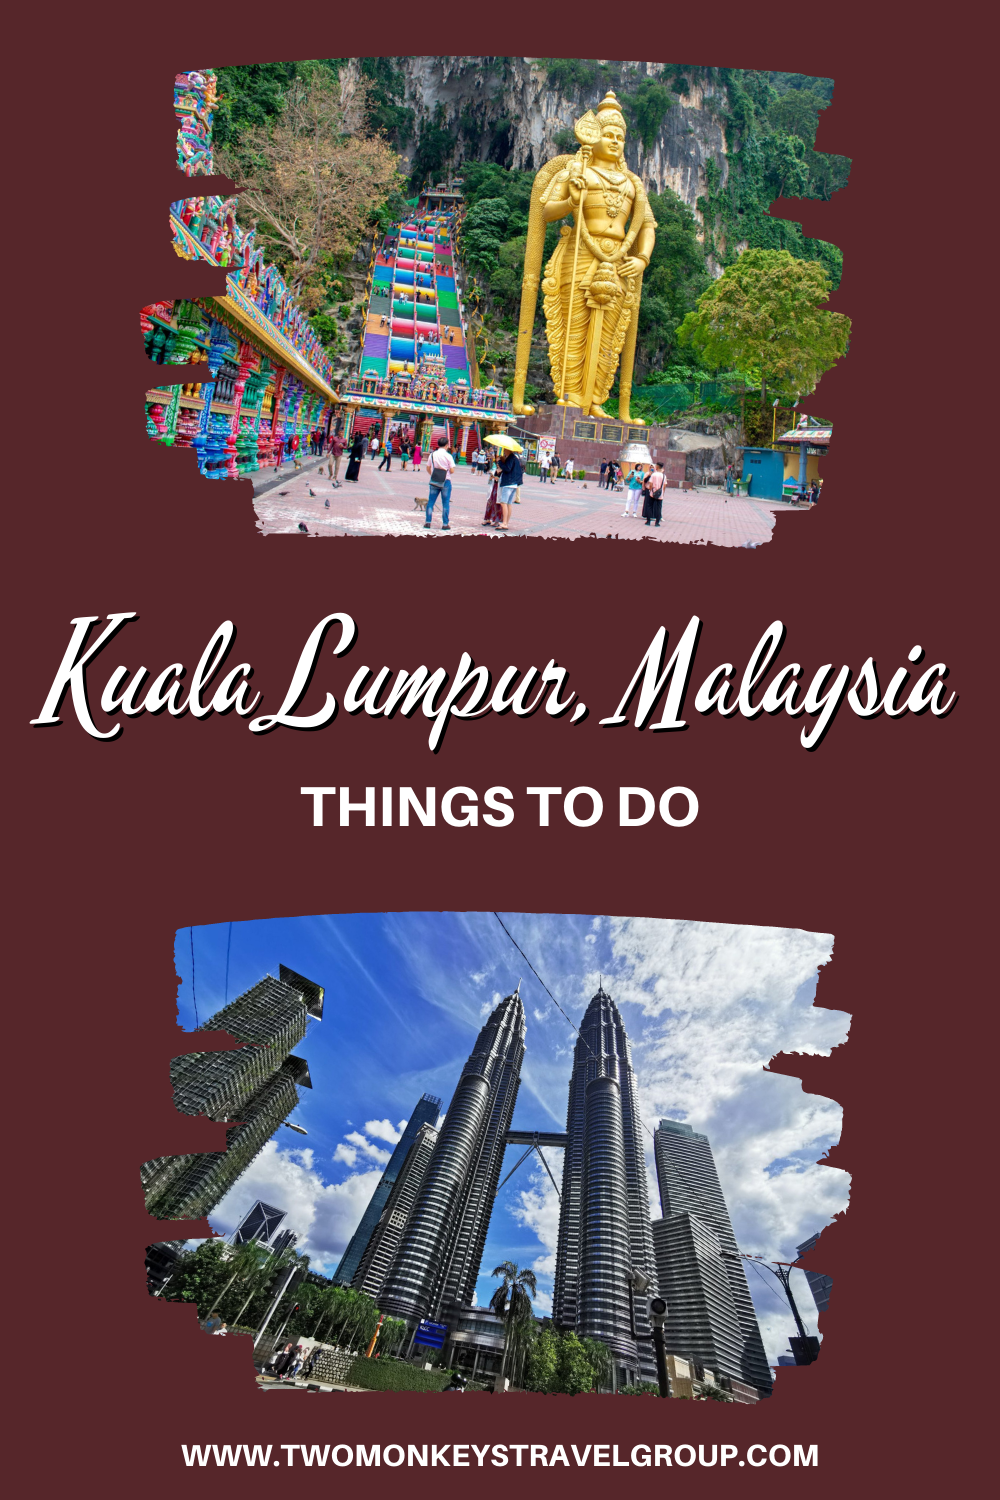 7 Things To Do In Kuala Lumpur, Malaysia [with Suggested Tours]